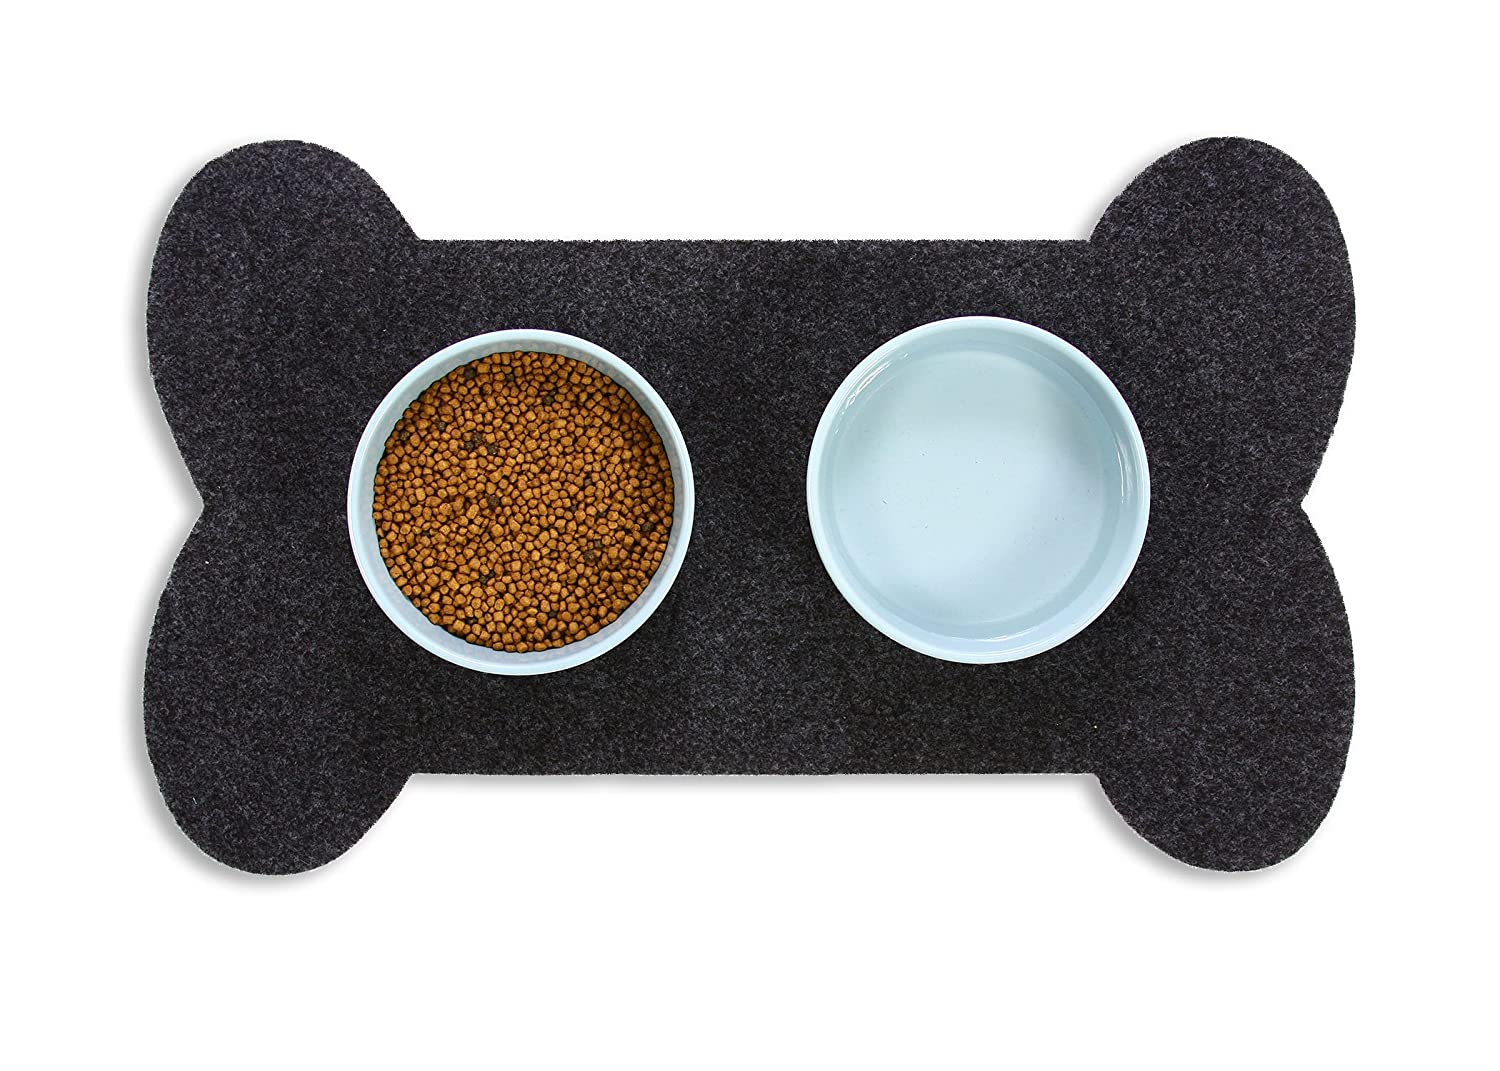 Resilia Feeding Mat for Dog Bowls – Protects Floors from Pet Food and Water, Bone Shape, Gray, 29.5 Inches X 18 Inches